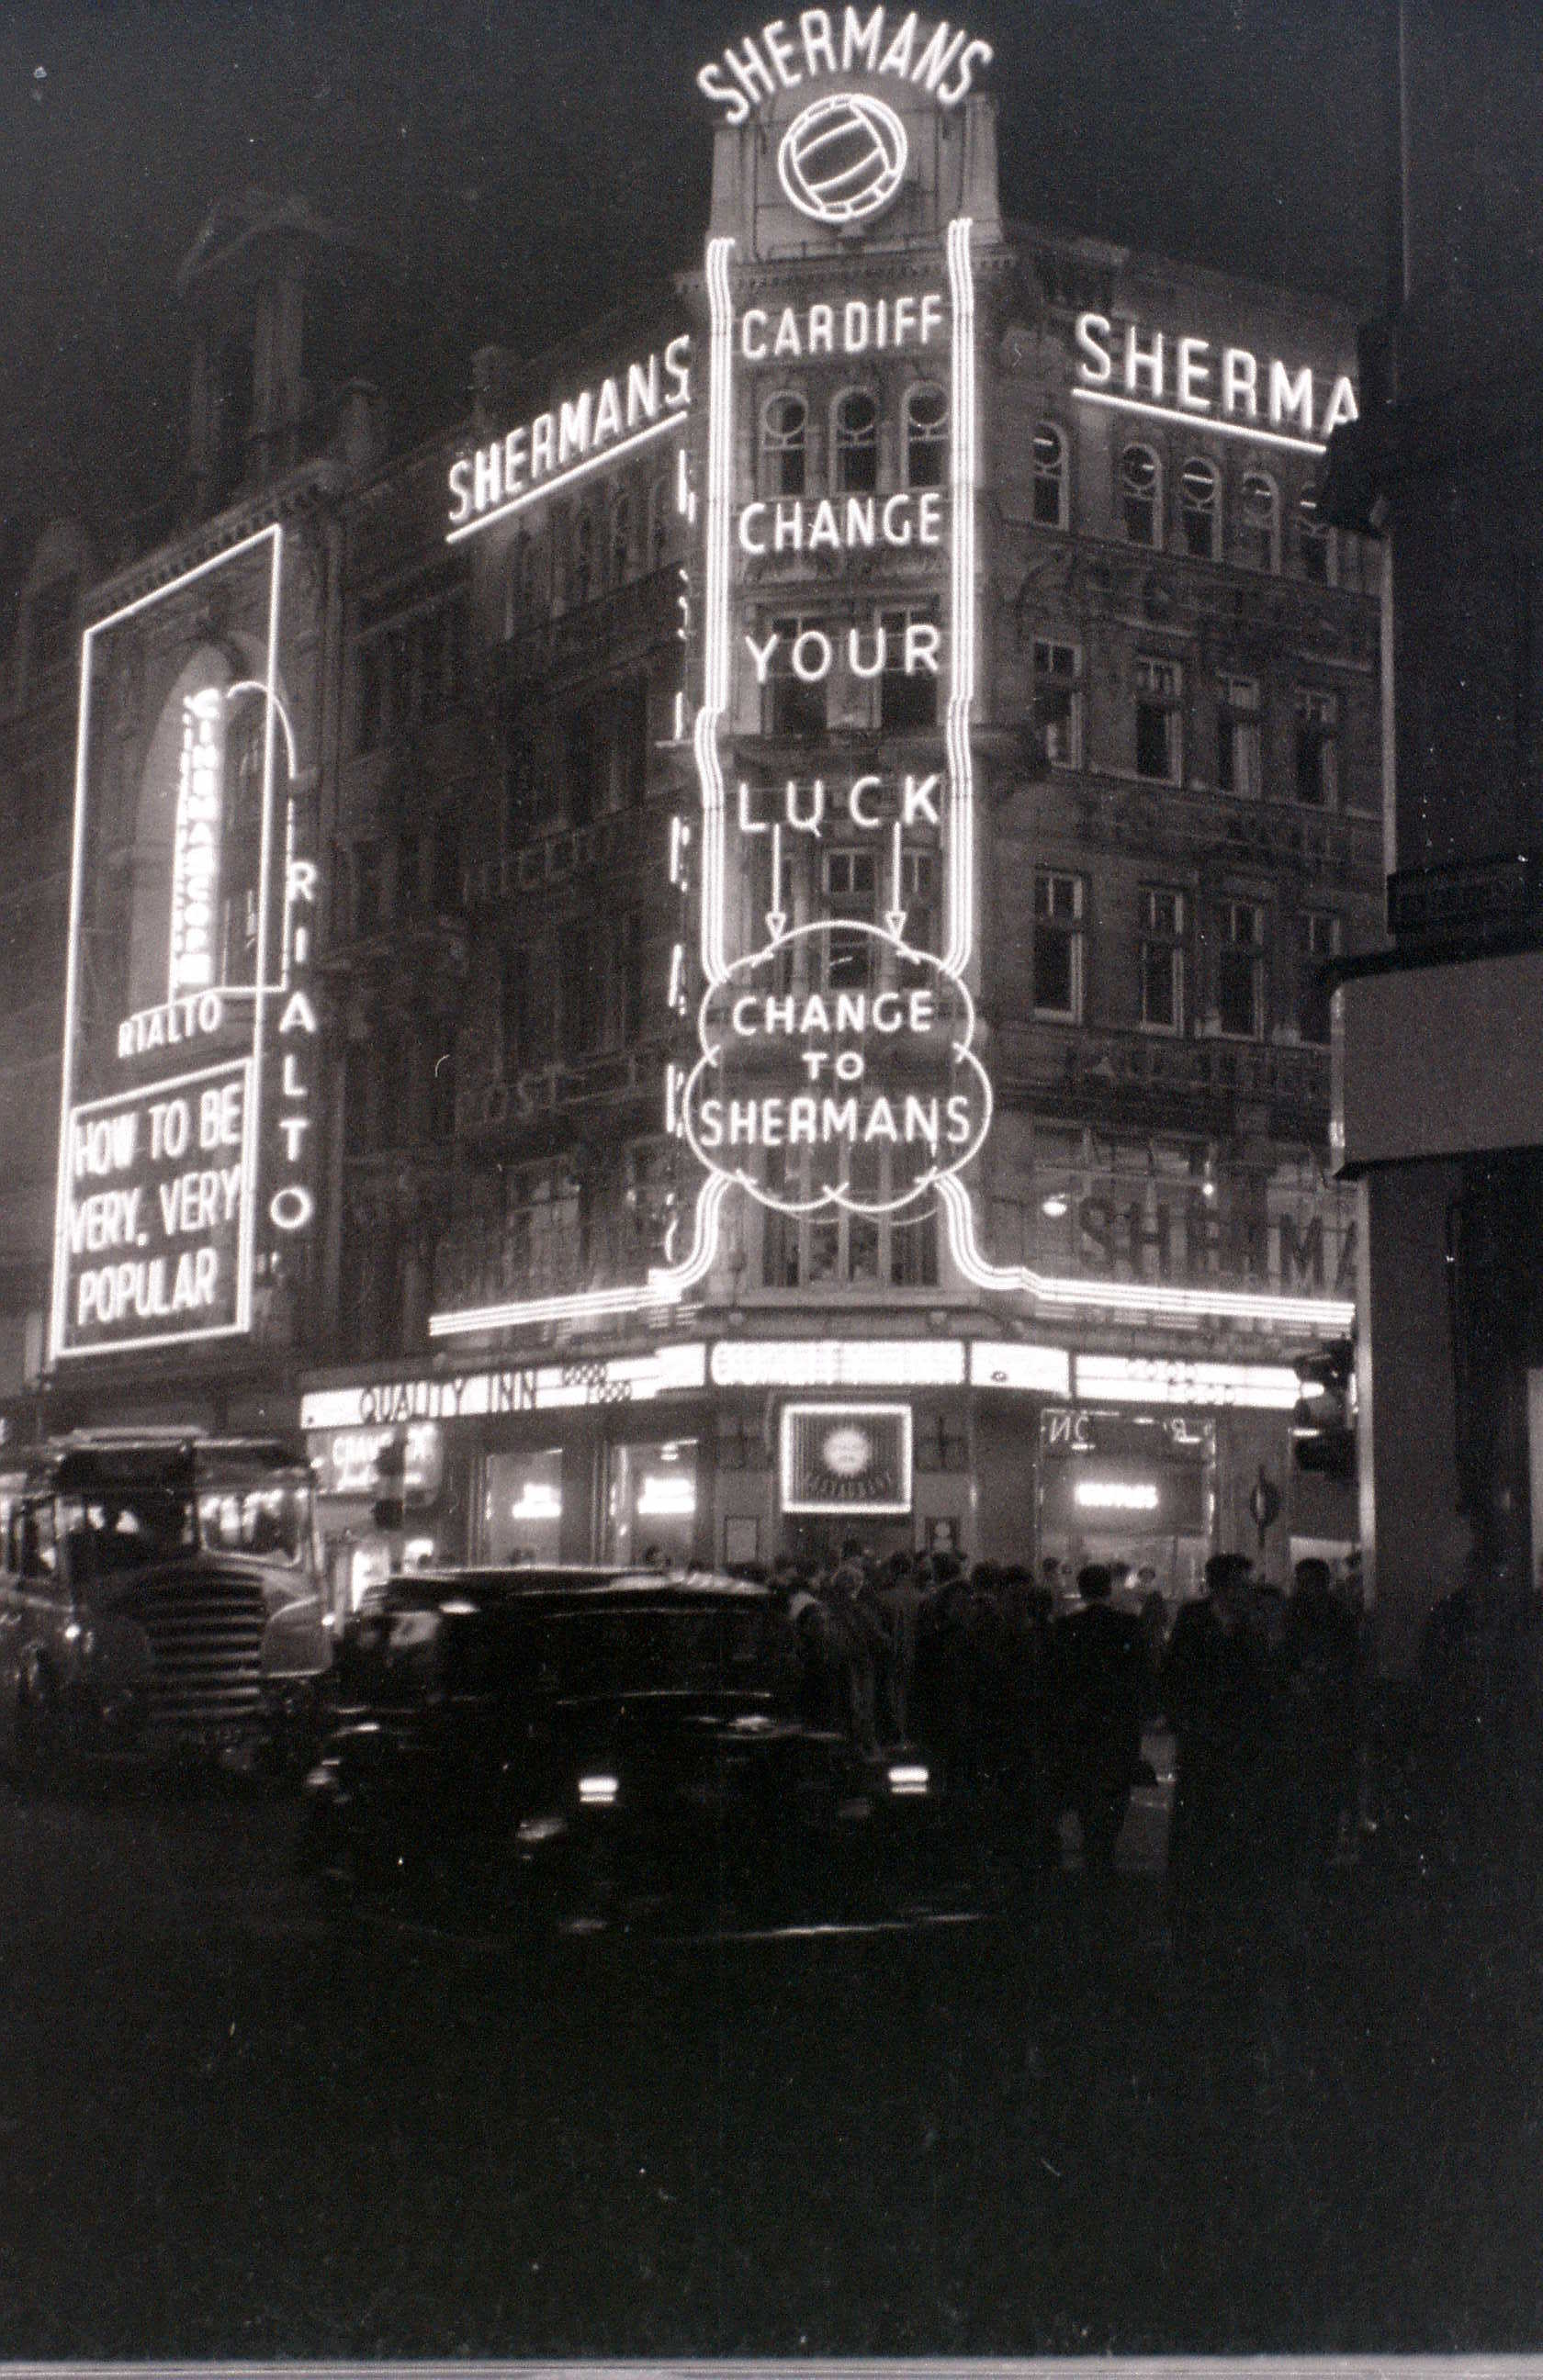 Coventry Street, London, 5 November 1955